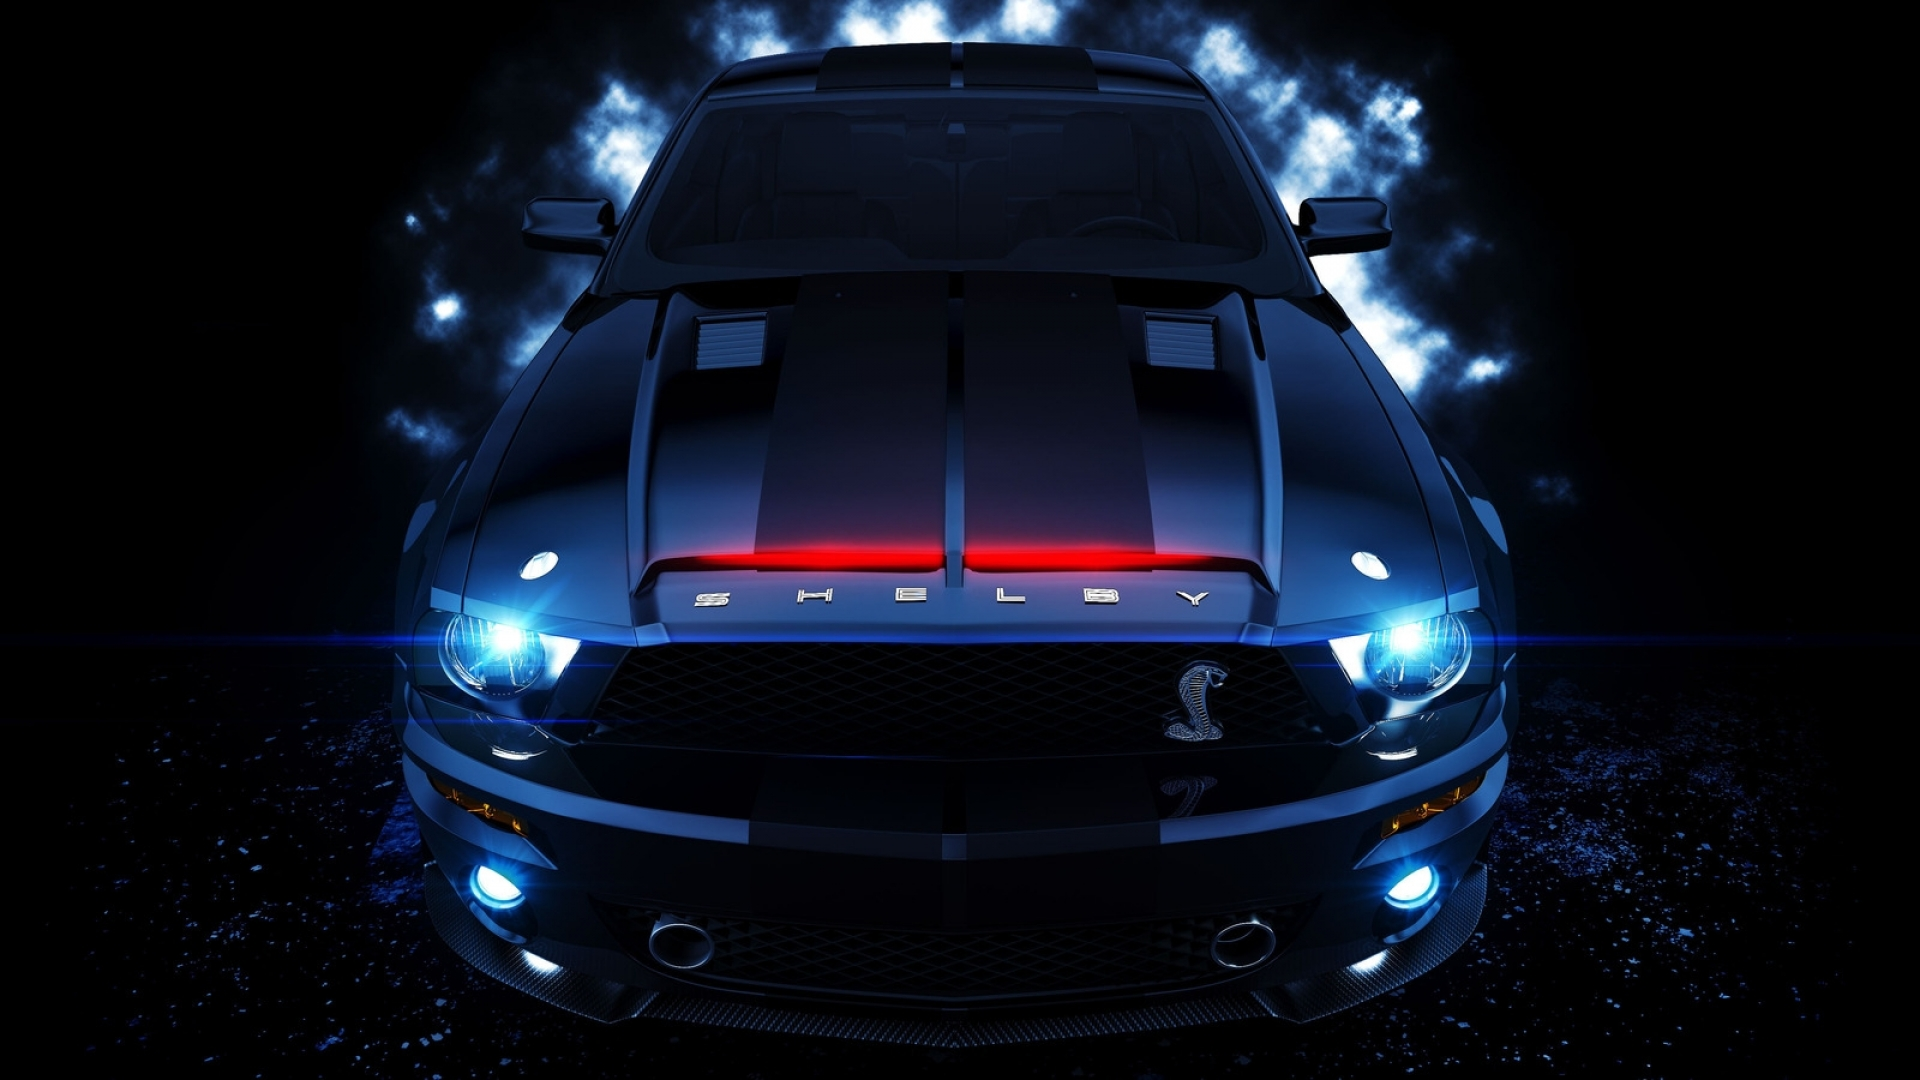 Original Mustang Shelby >> Ford Mustang Shelby GT500 Wallpapers, Pictures, Images